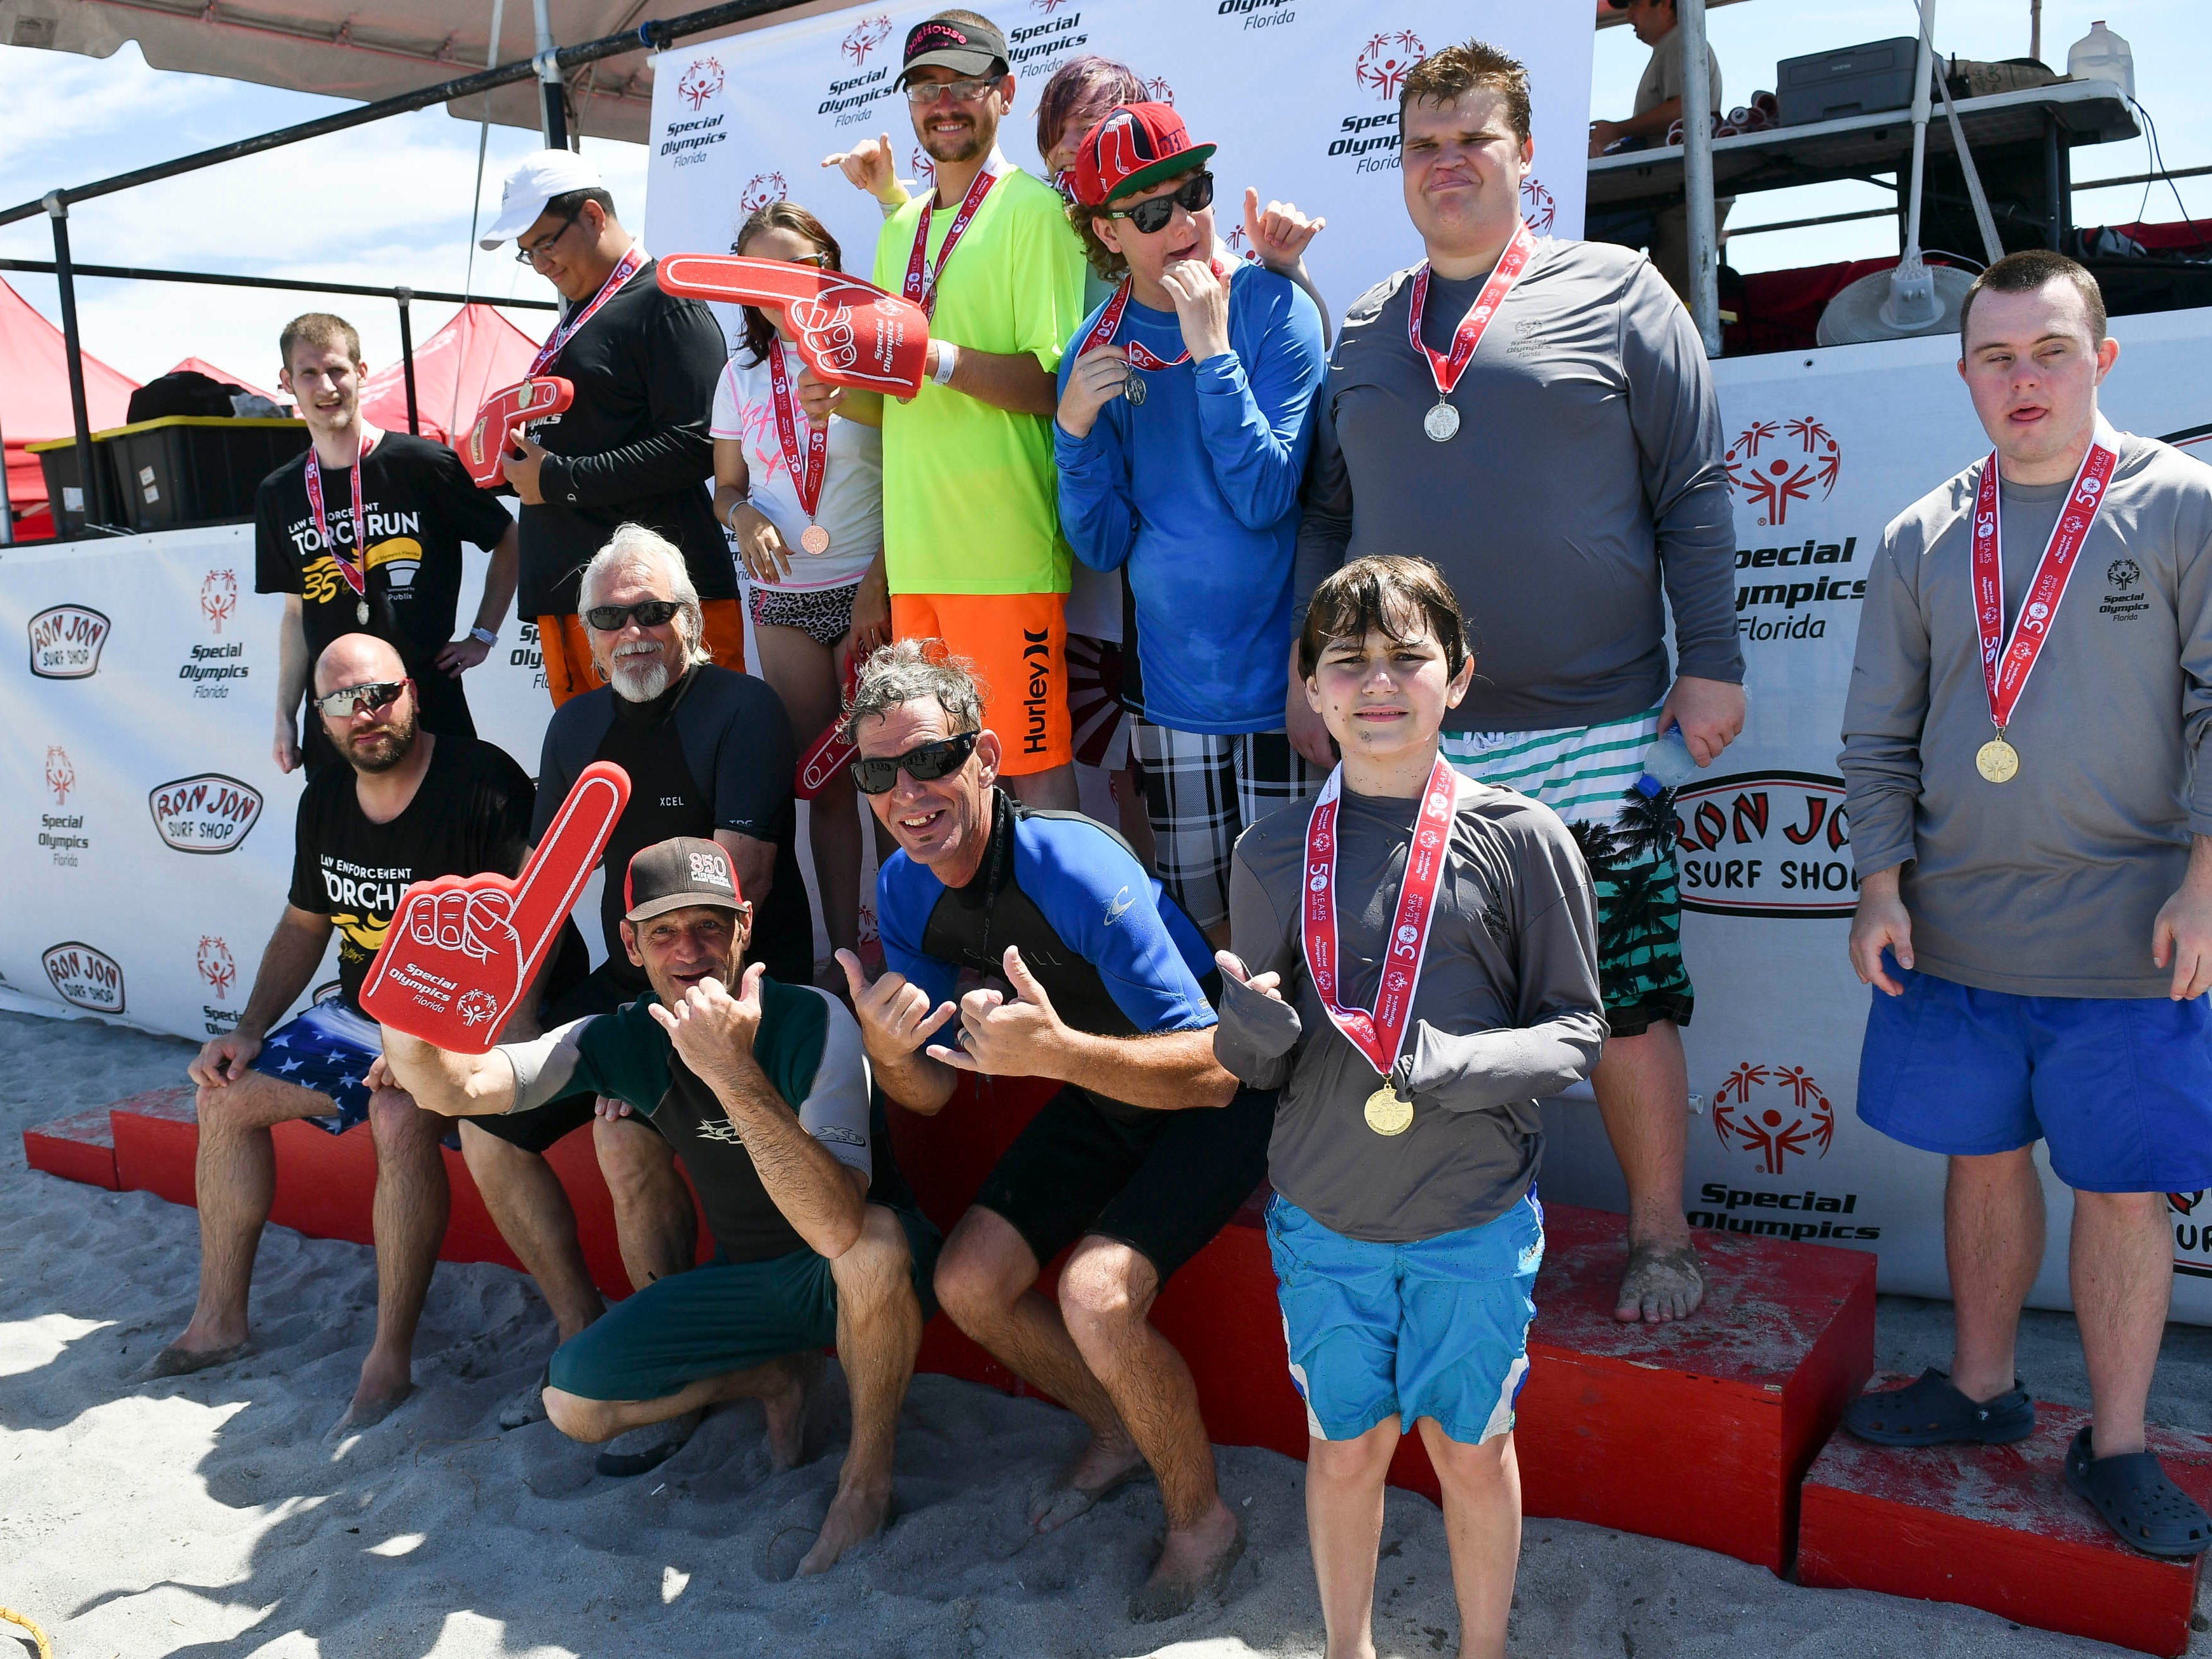 Members of the Okaloosa County group pose for pictures during the Special Olympic spring surfing festival at Shepard Park in Cocoa Beach.